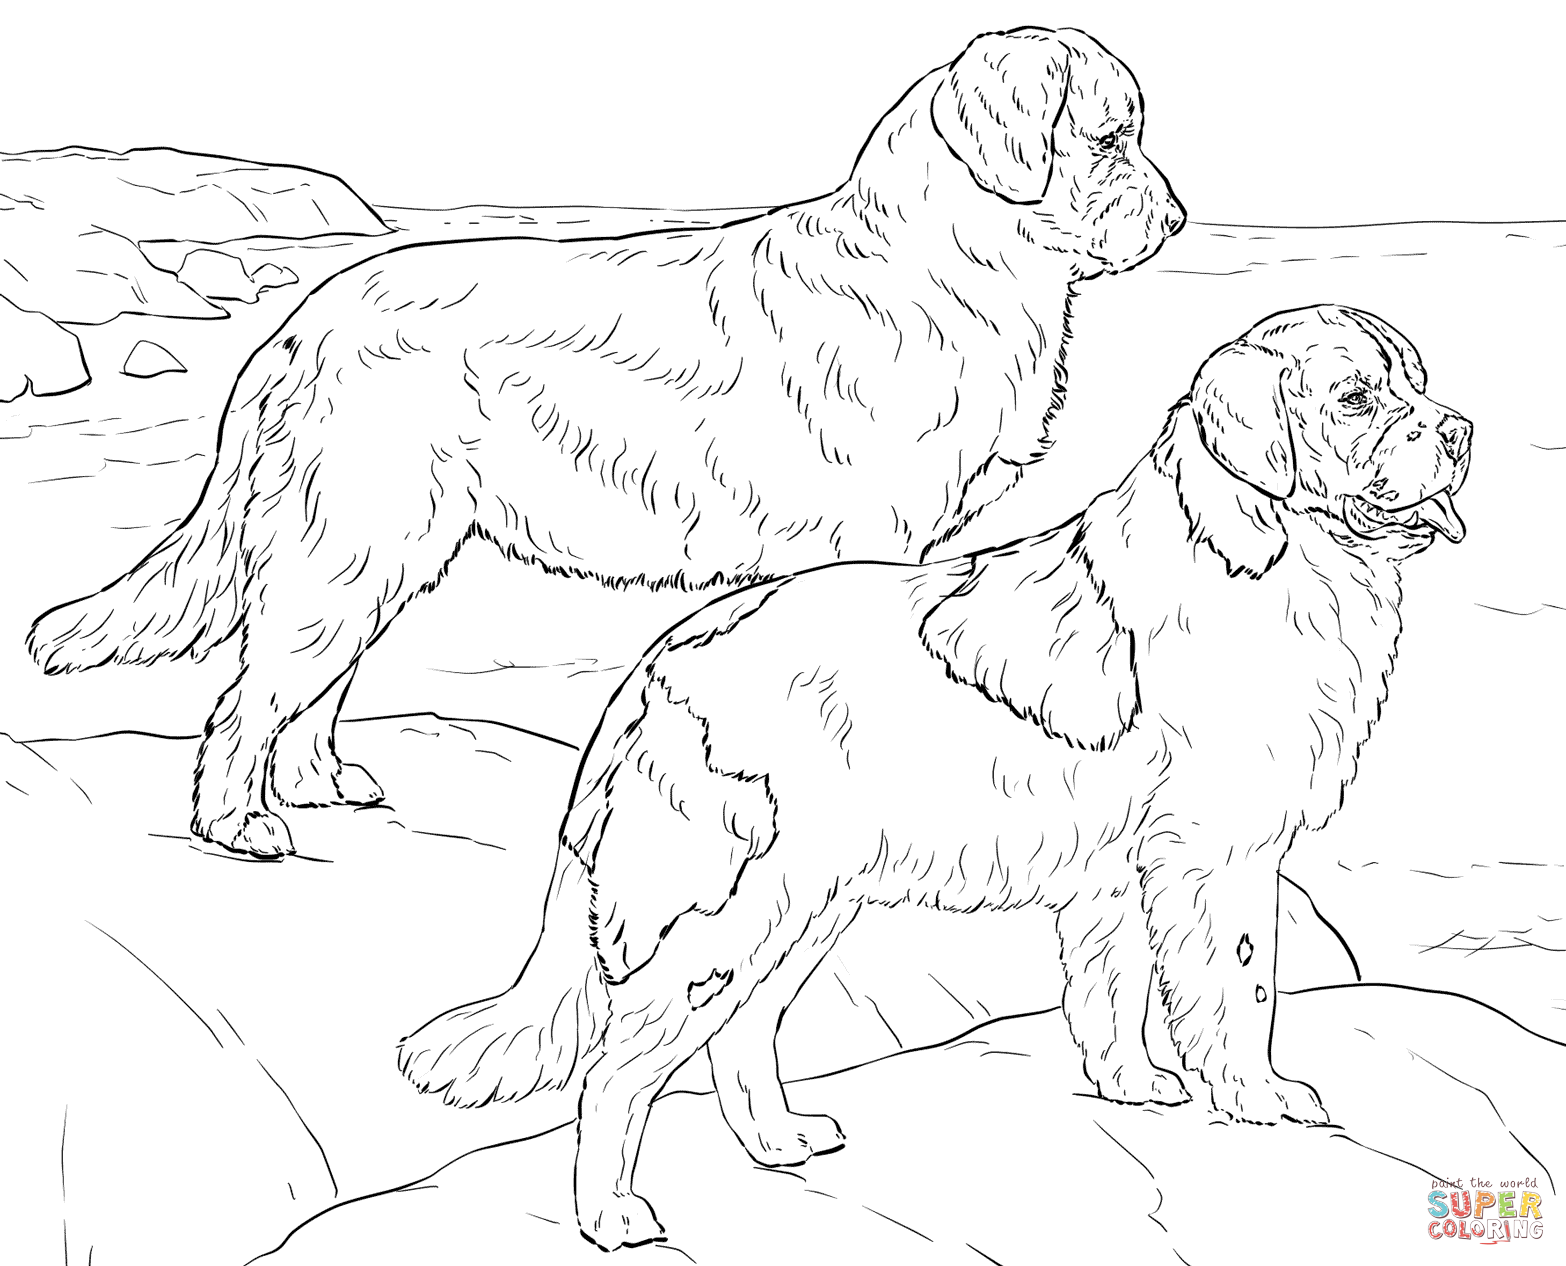 newfoundland dog coloring pages newfoundland drawing at getdrawings free download pages coloring dog newfoundland